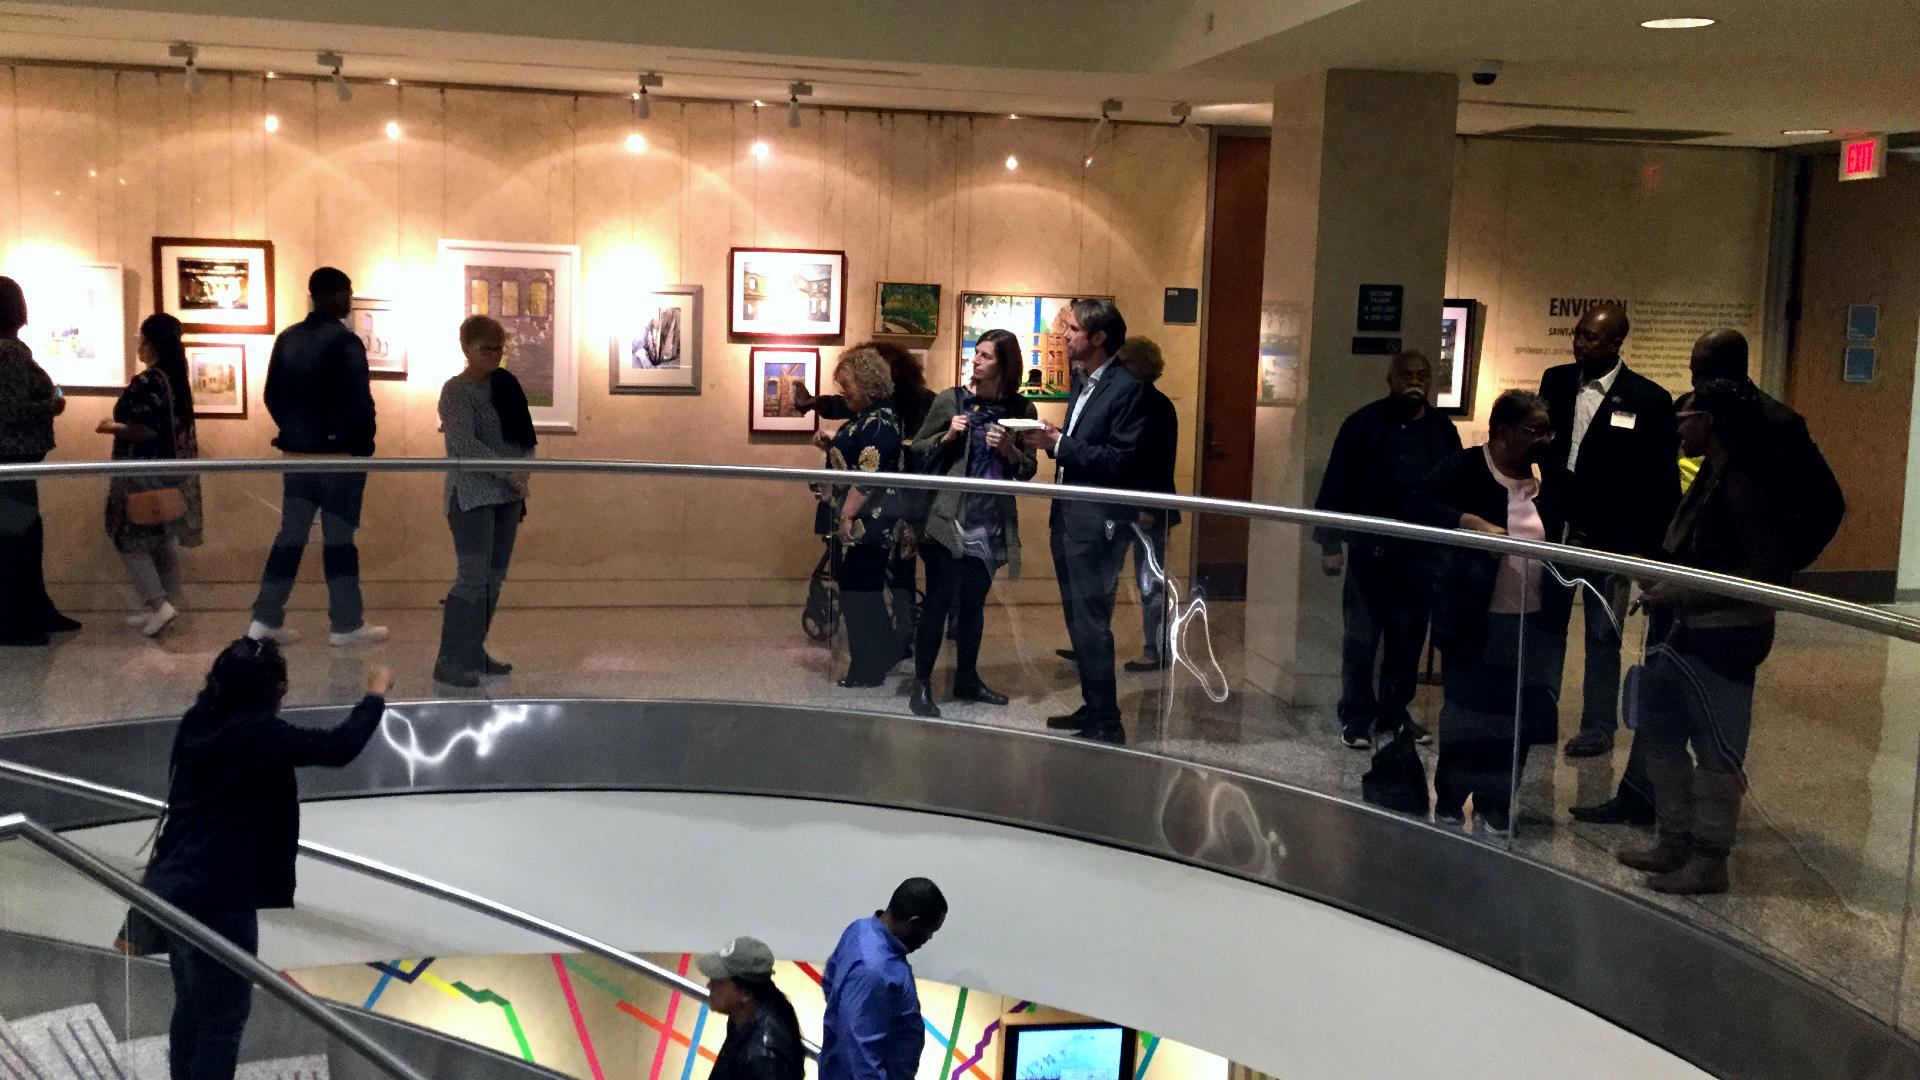 people gathered in a gallery space